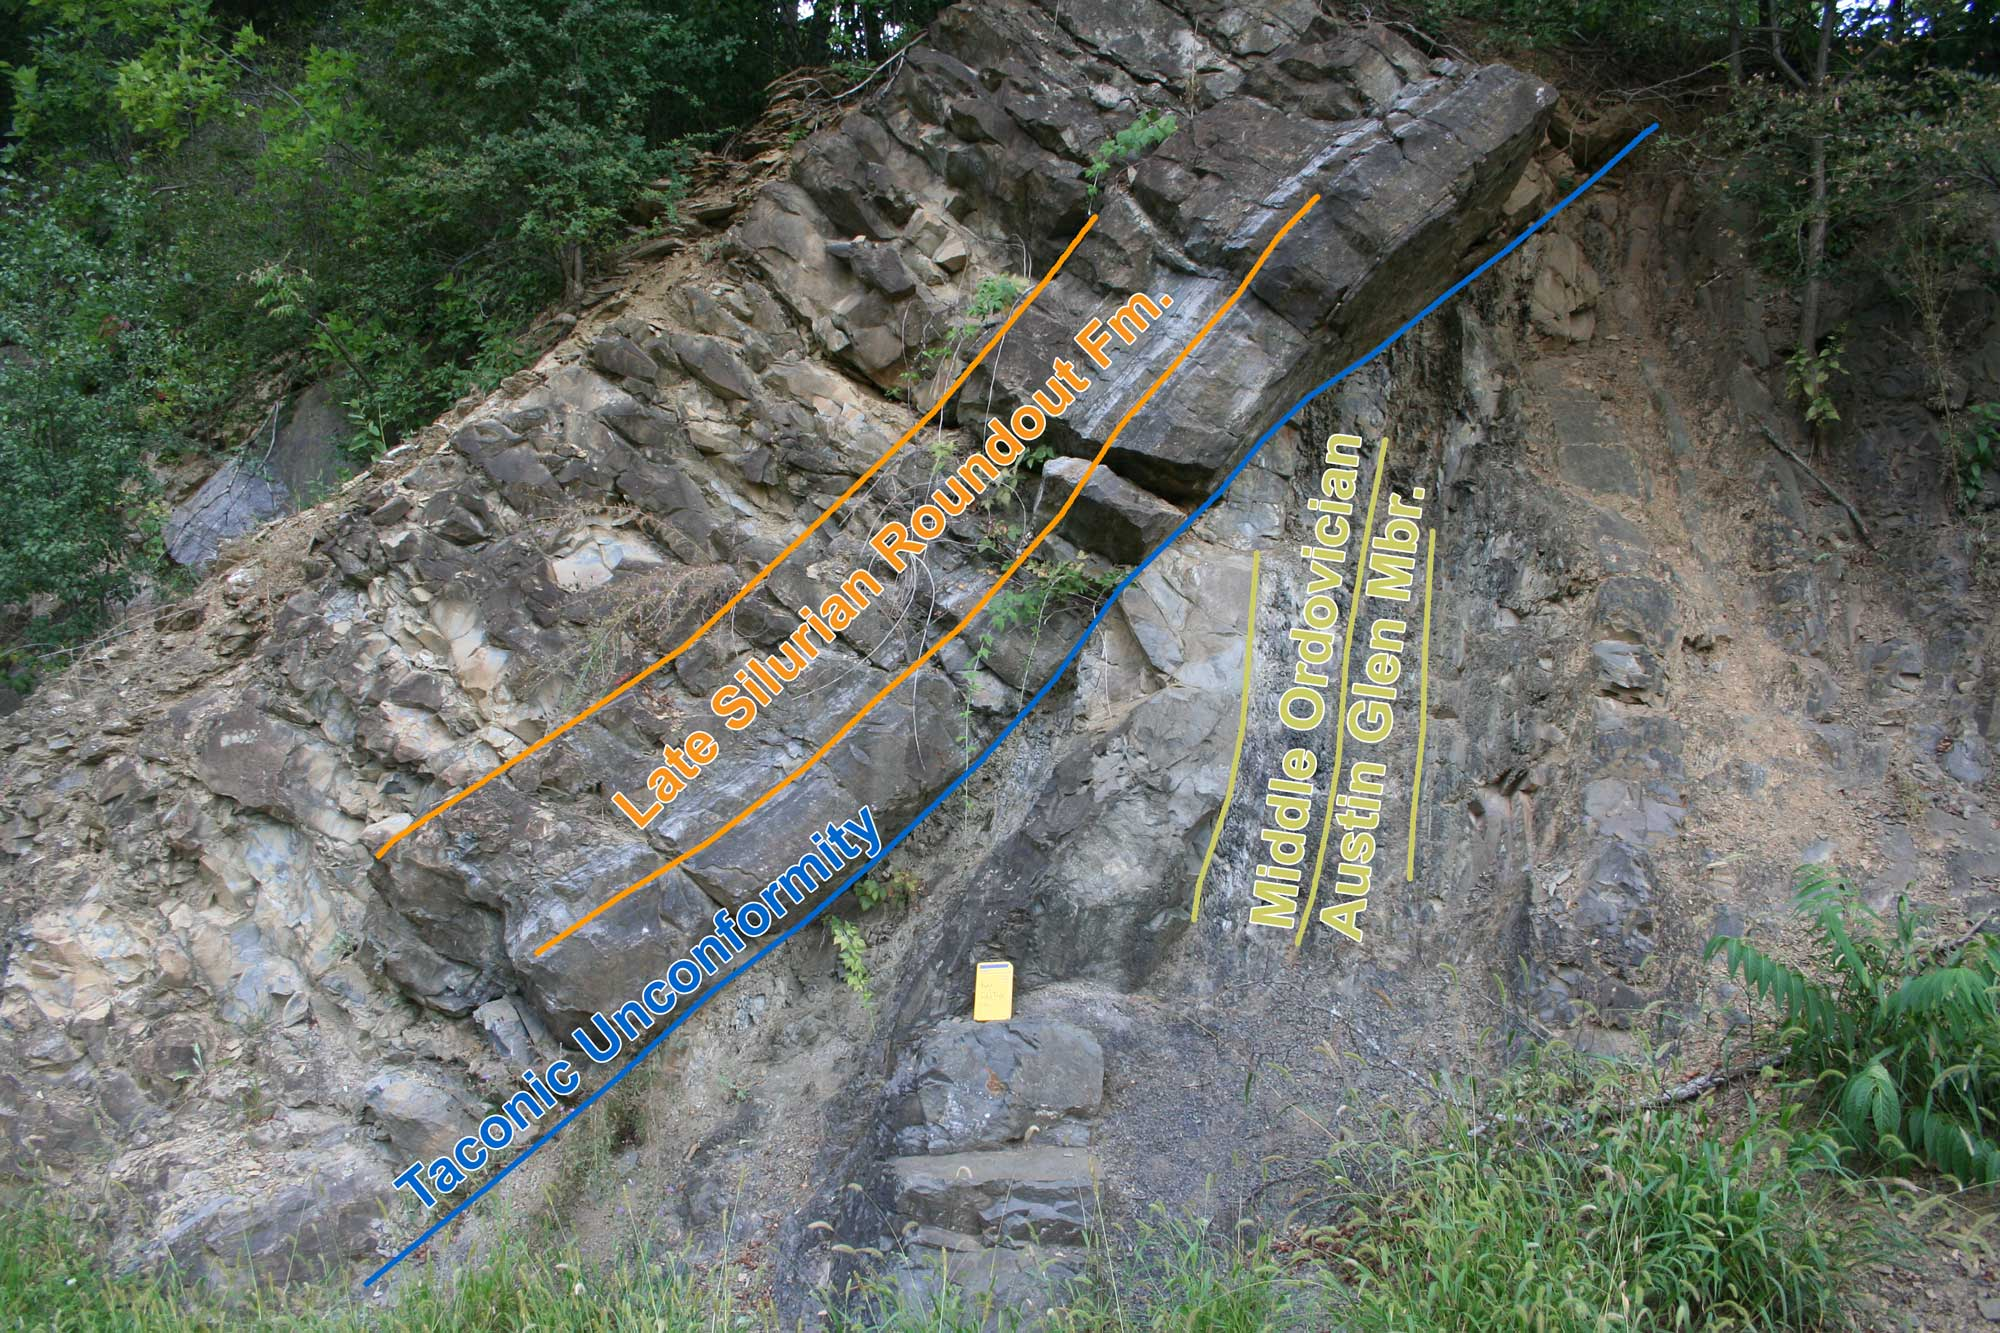 Photograph of the Taconic Unconformity near Catskill, New York, with different strata labeled.